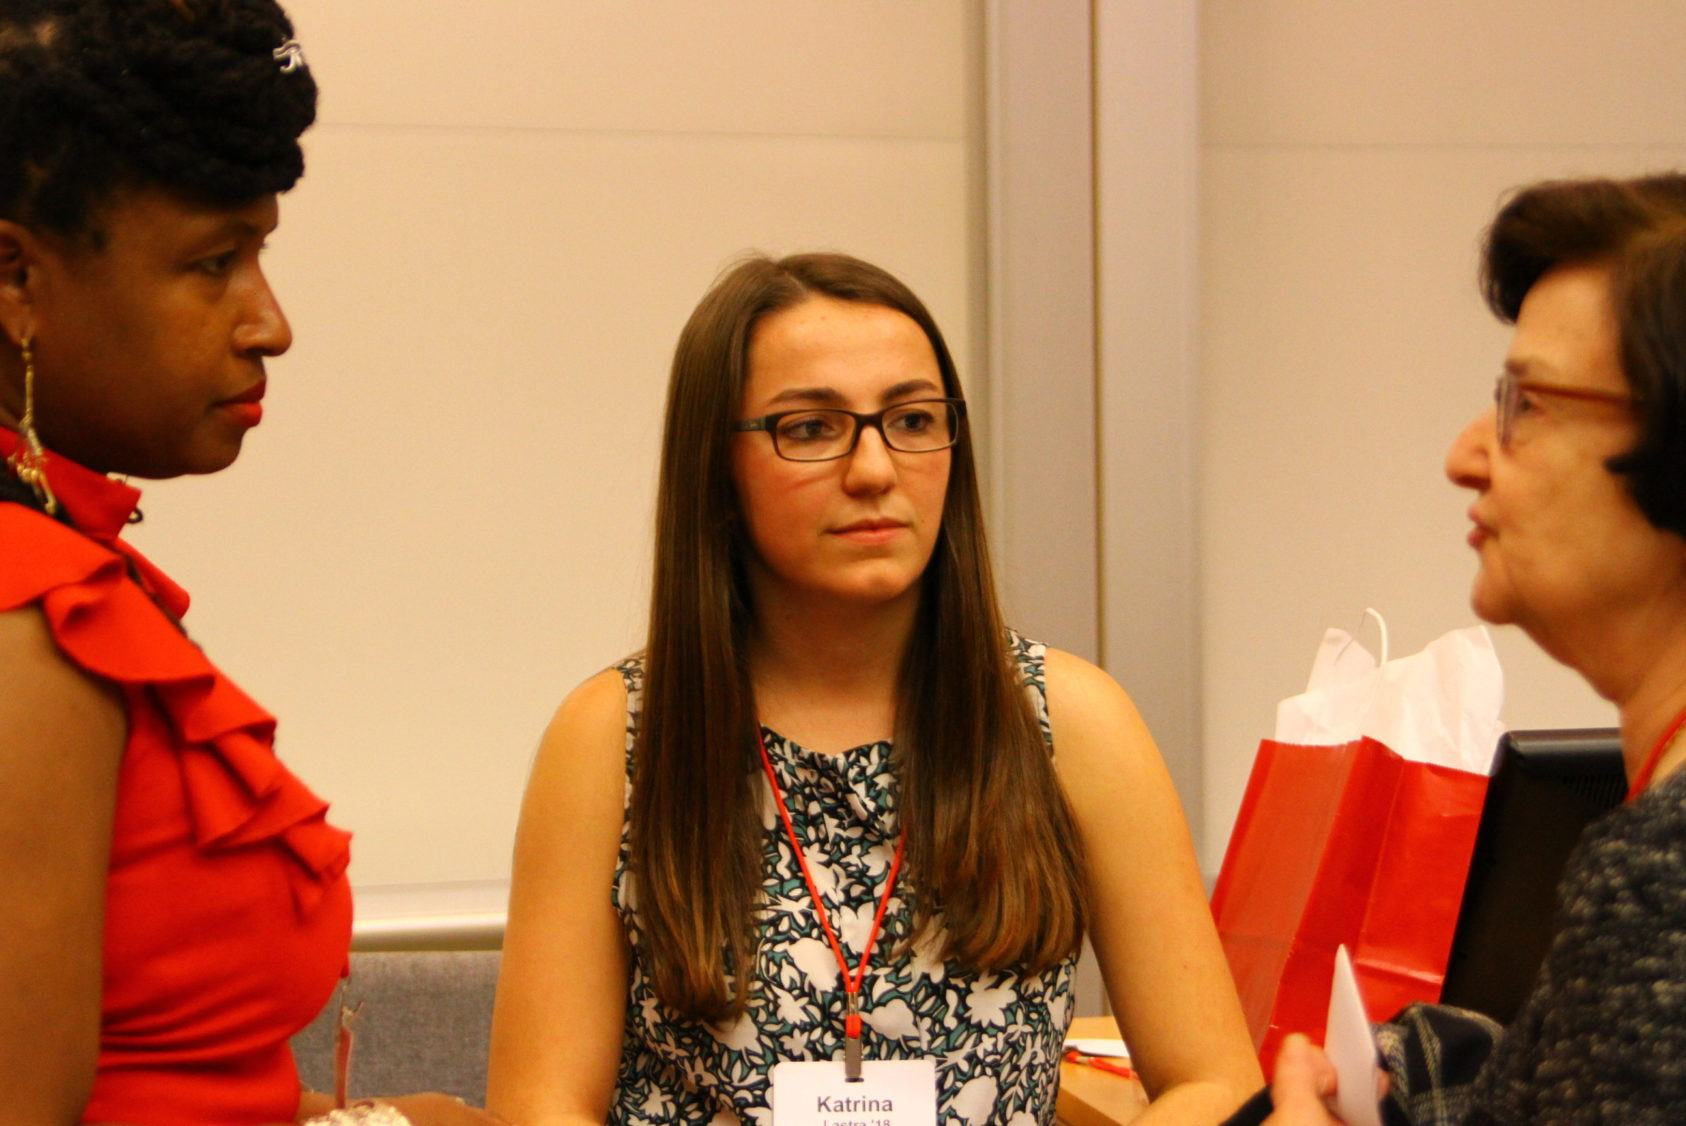 Katrina Lastra, a student panelist at the first-gen TCAM panel